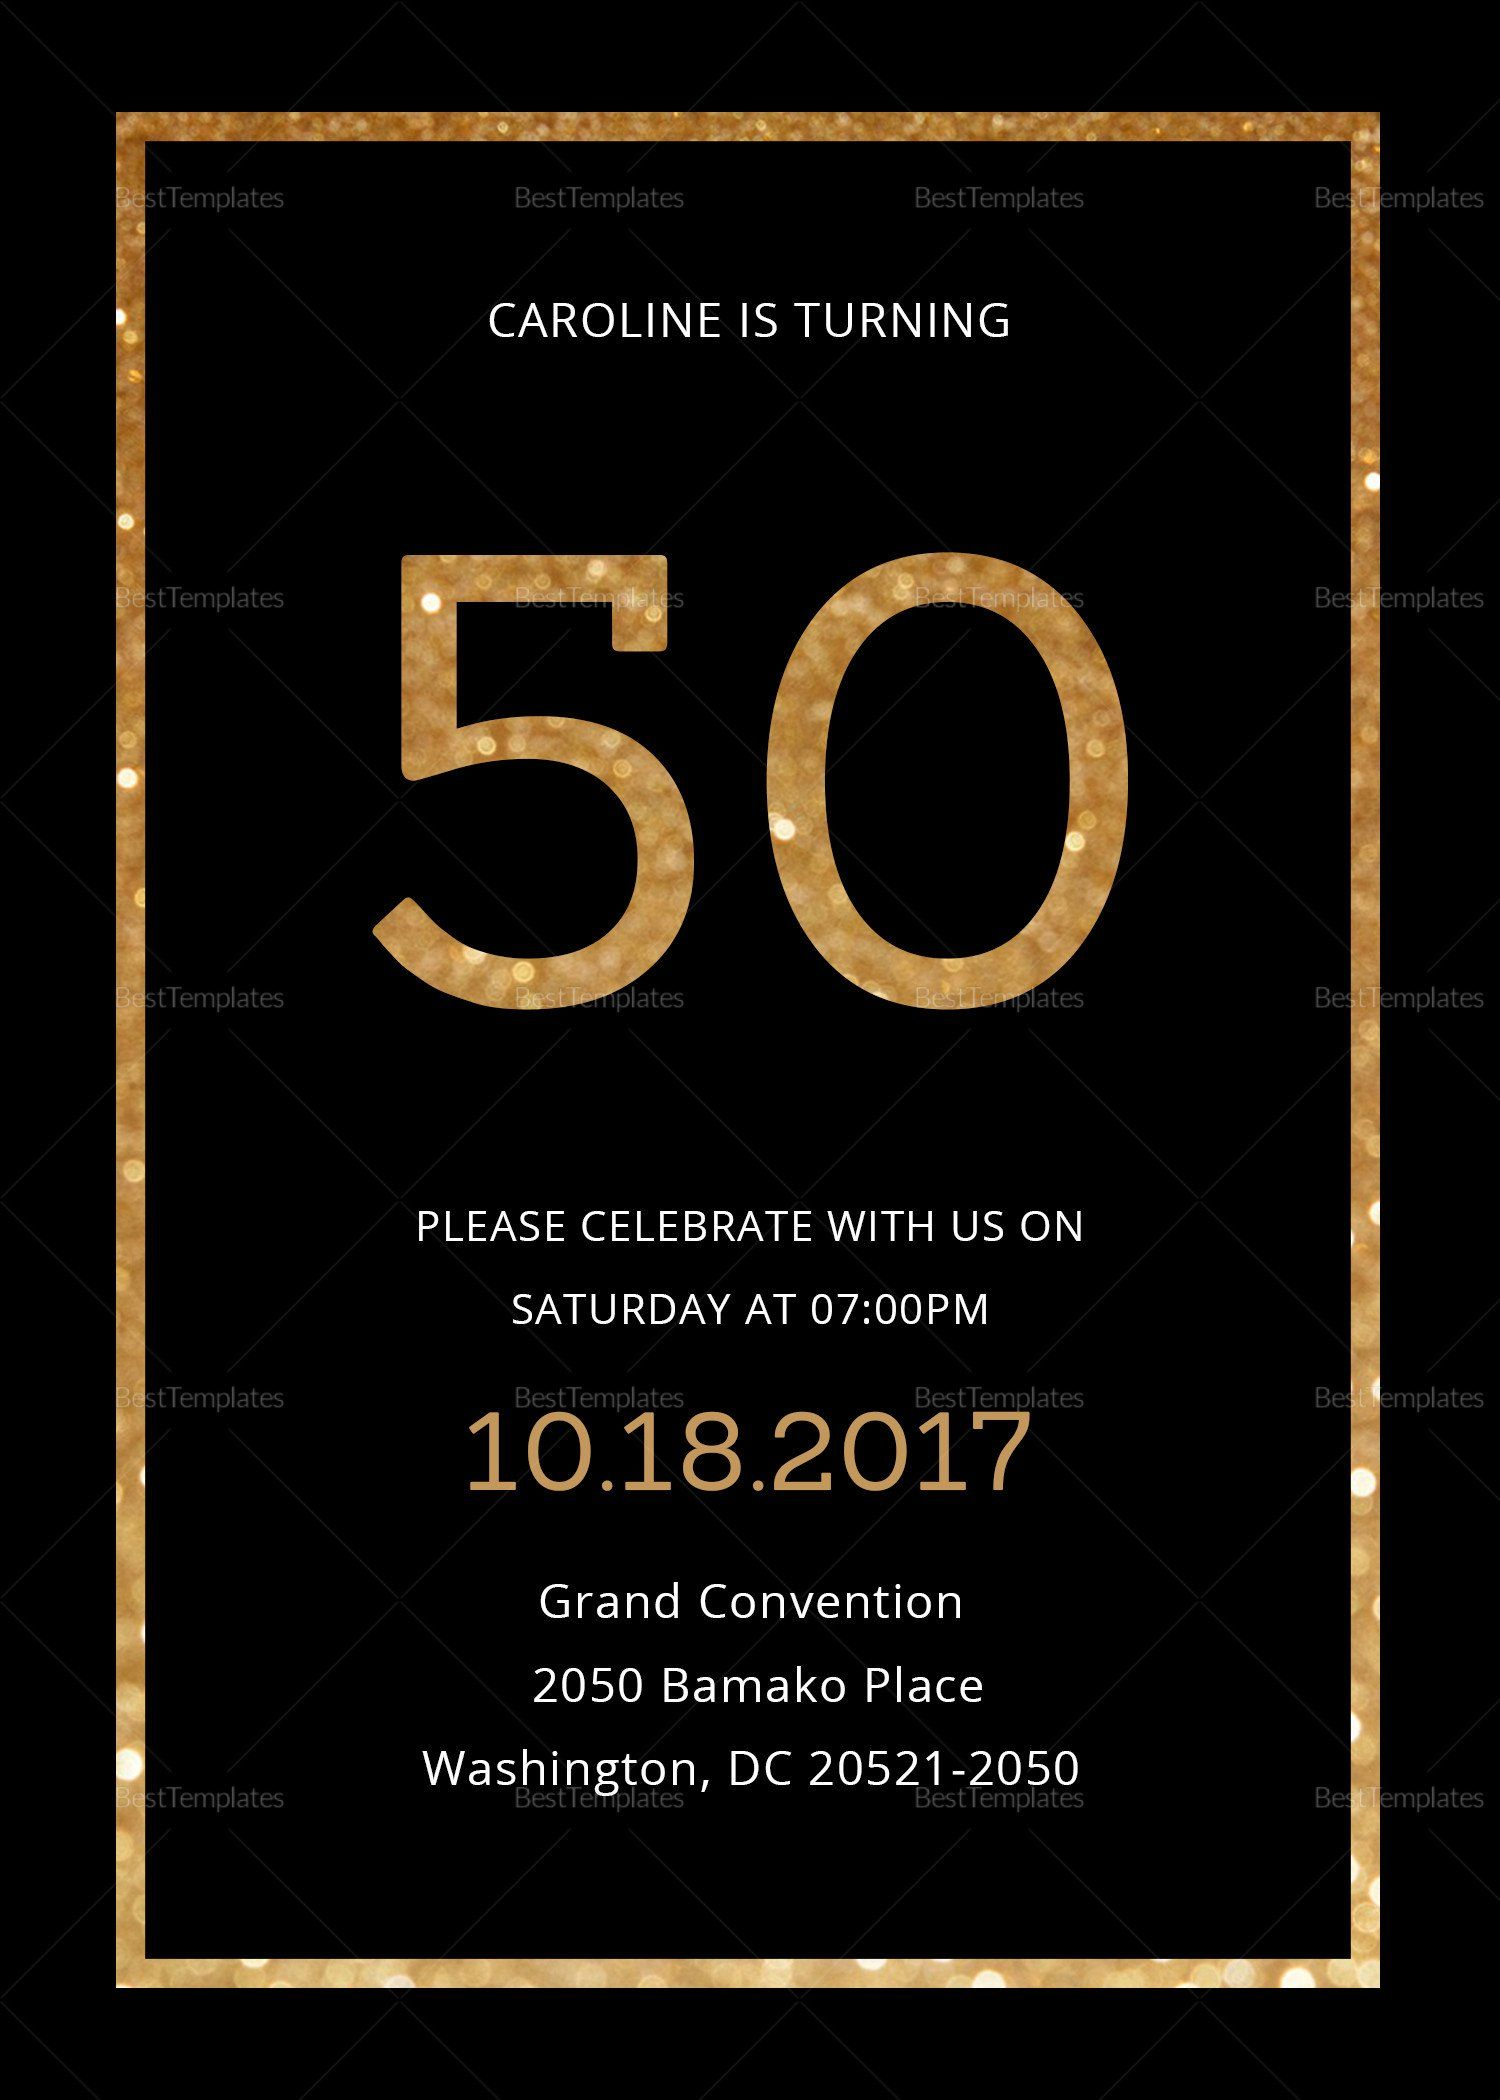 Black And Gold Invitation Template Elegant Black And Gold 50th Birthday Inv Party Invite Template Birthday Party Invitation Templates 50th Birthday Invitations